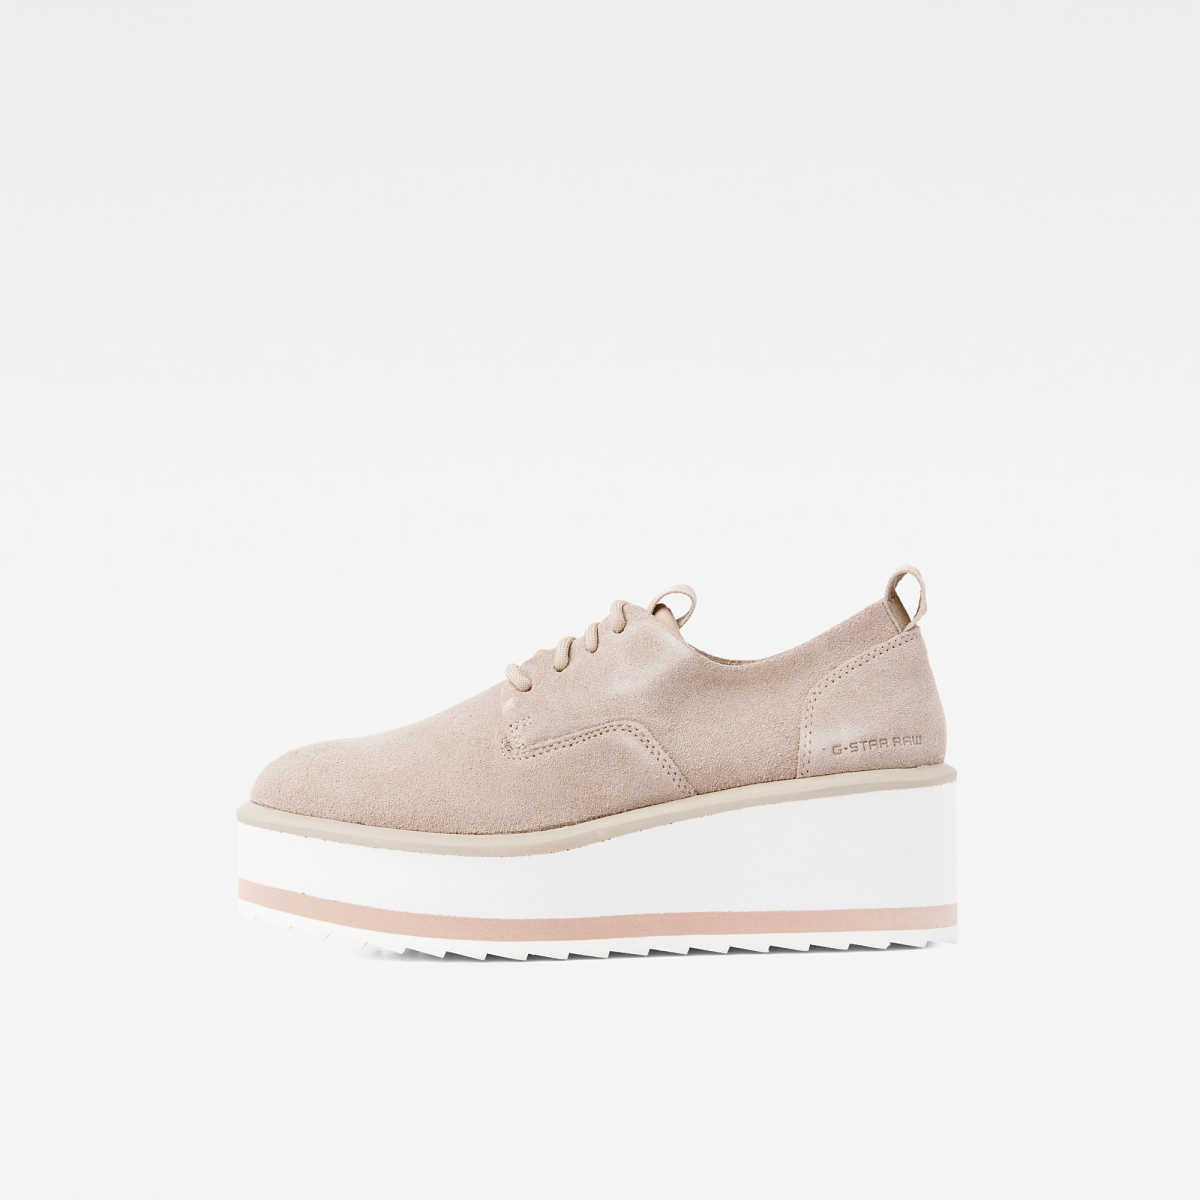 G-Star Female Strett Flatform Derby Shoes Grey USA - GOOFASH - Womens FLAT SHOES